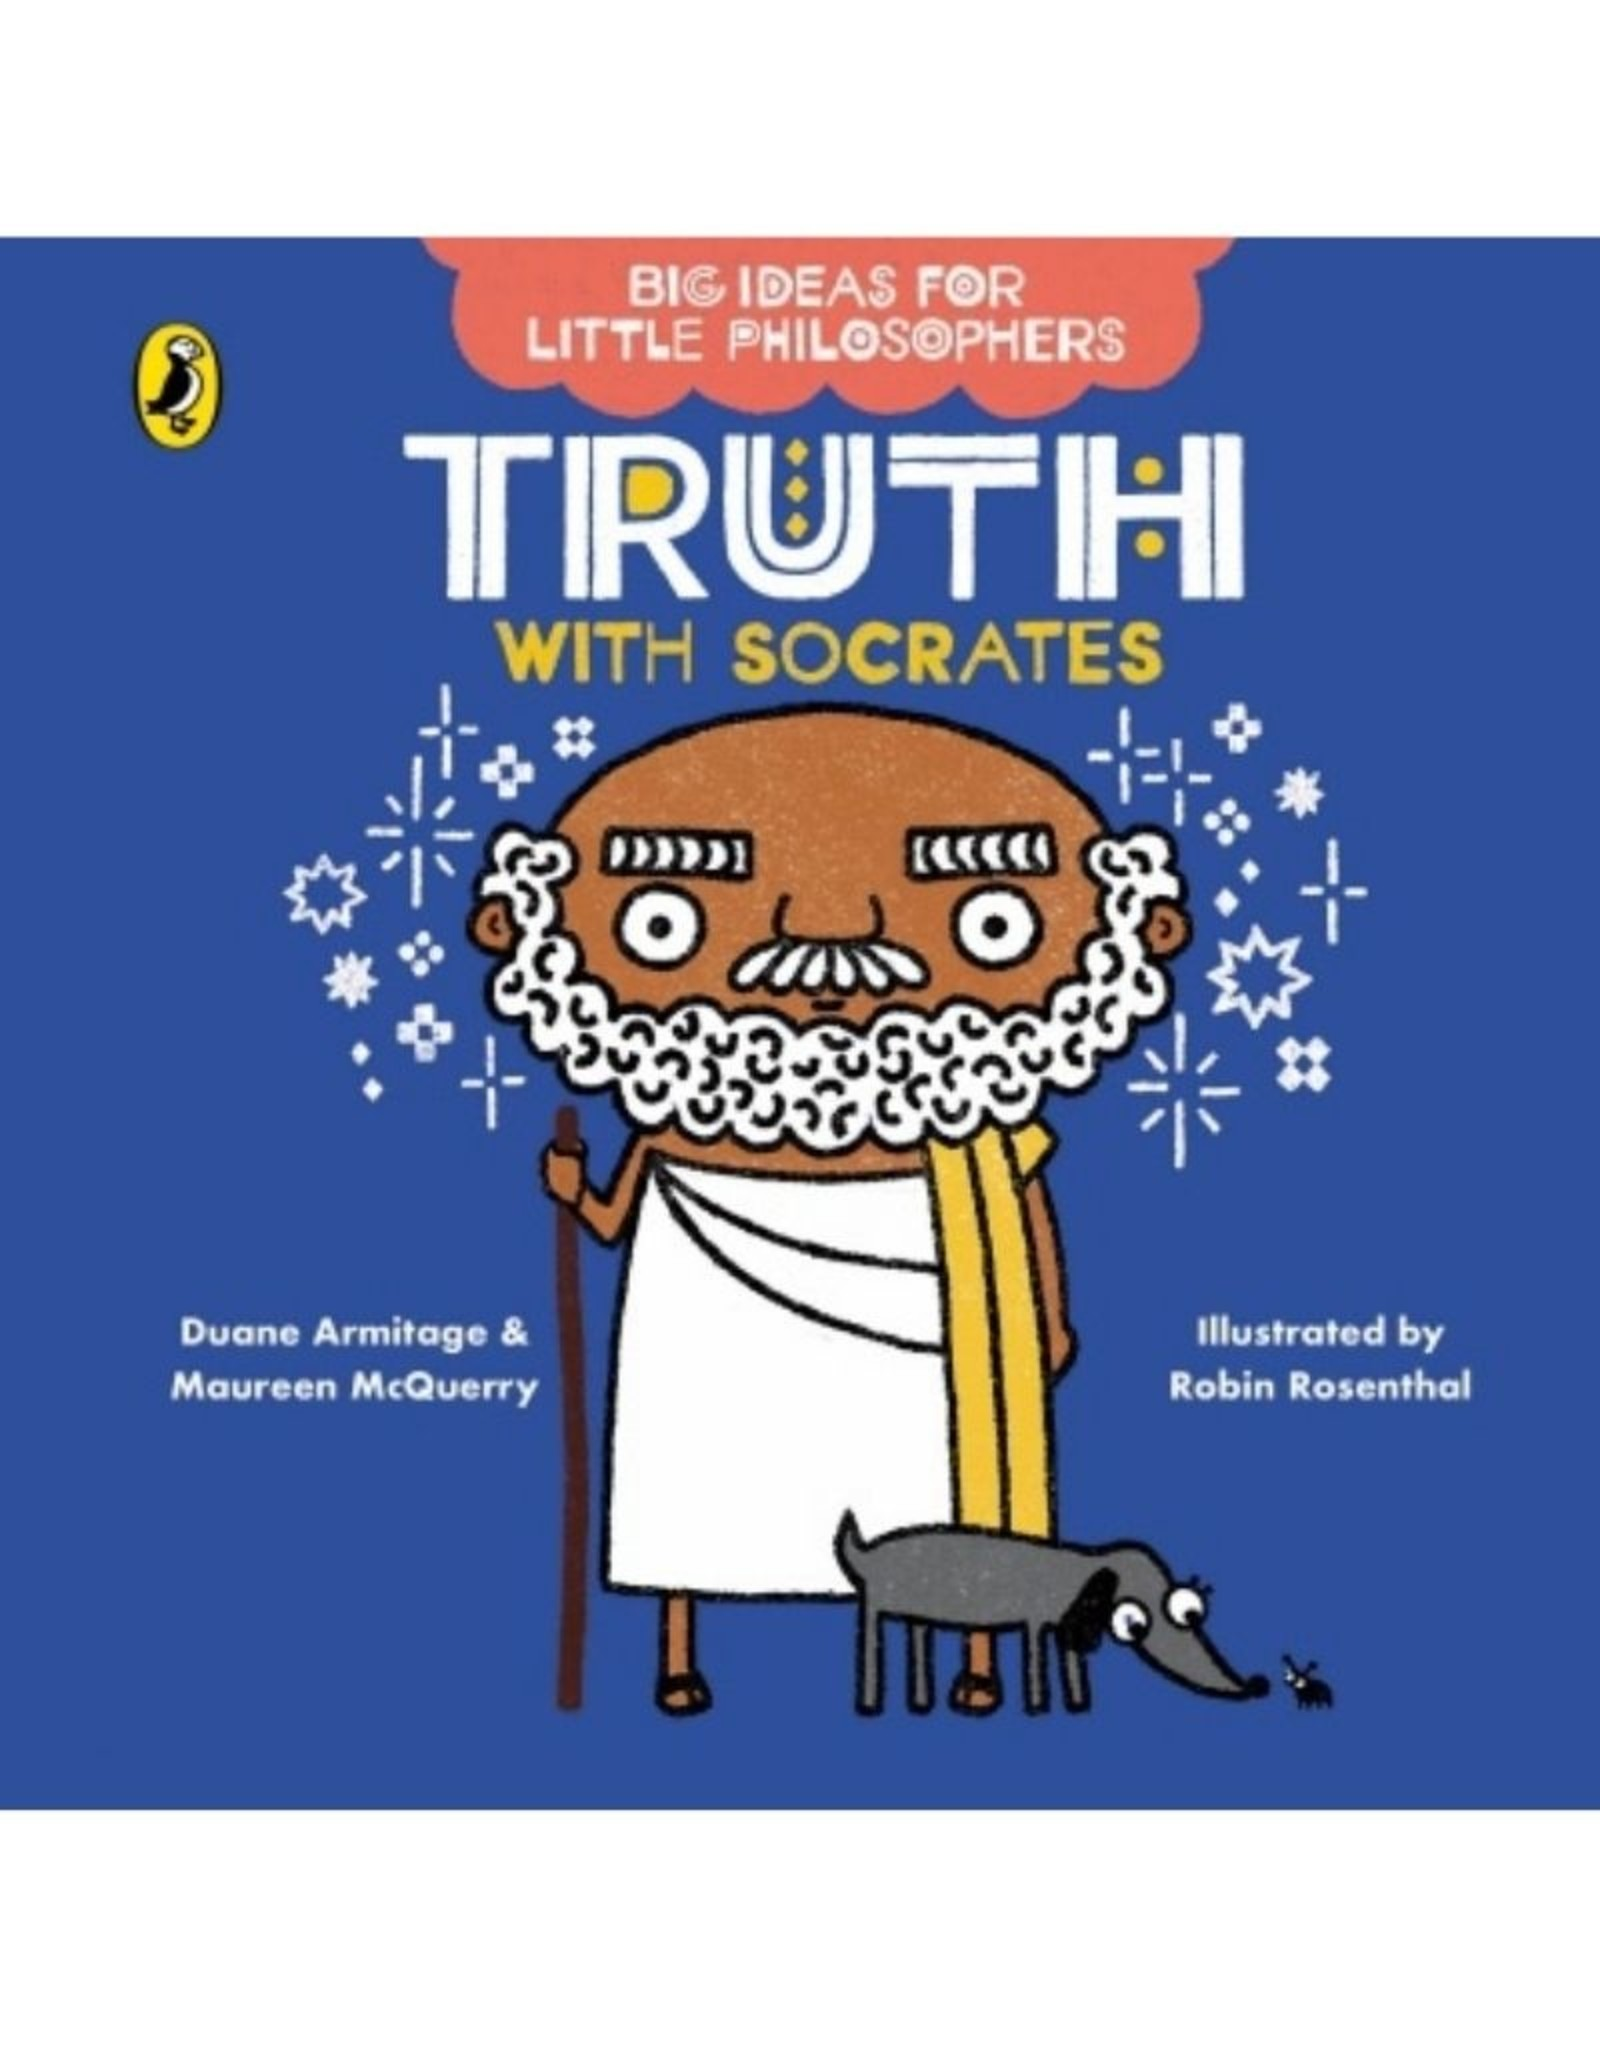 Big Ideas for Little Philosophers - Truth with Socrates